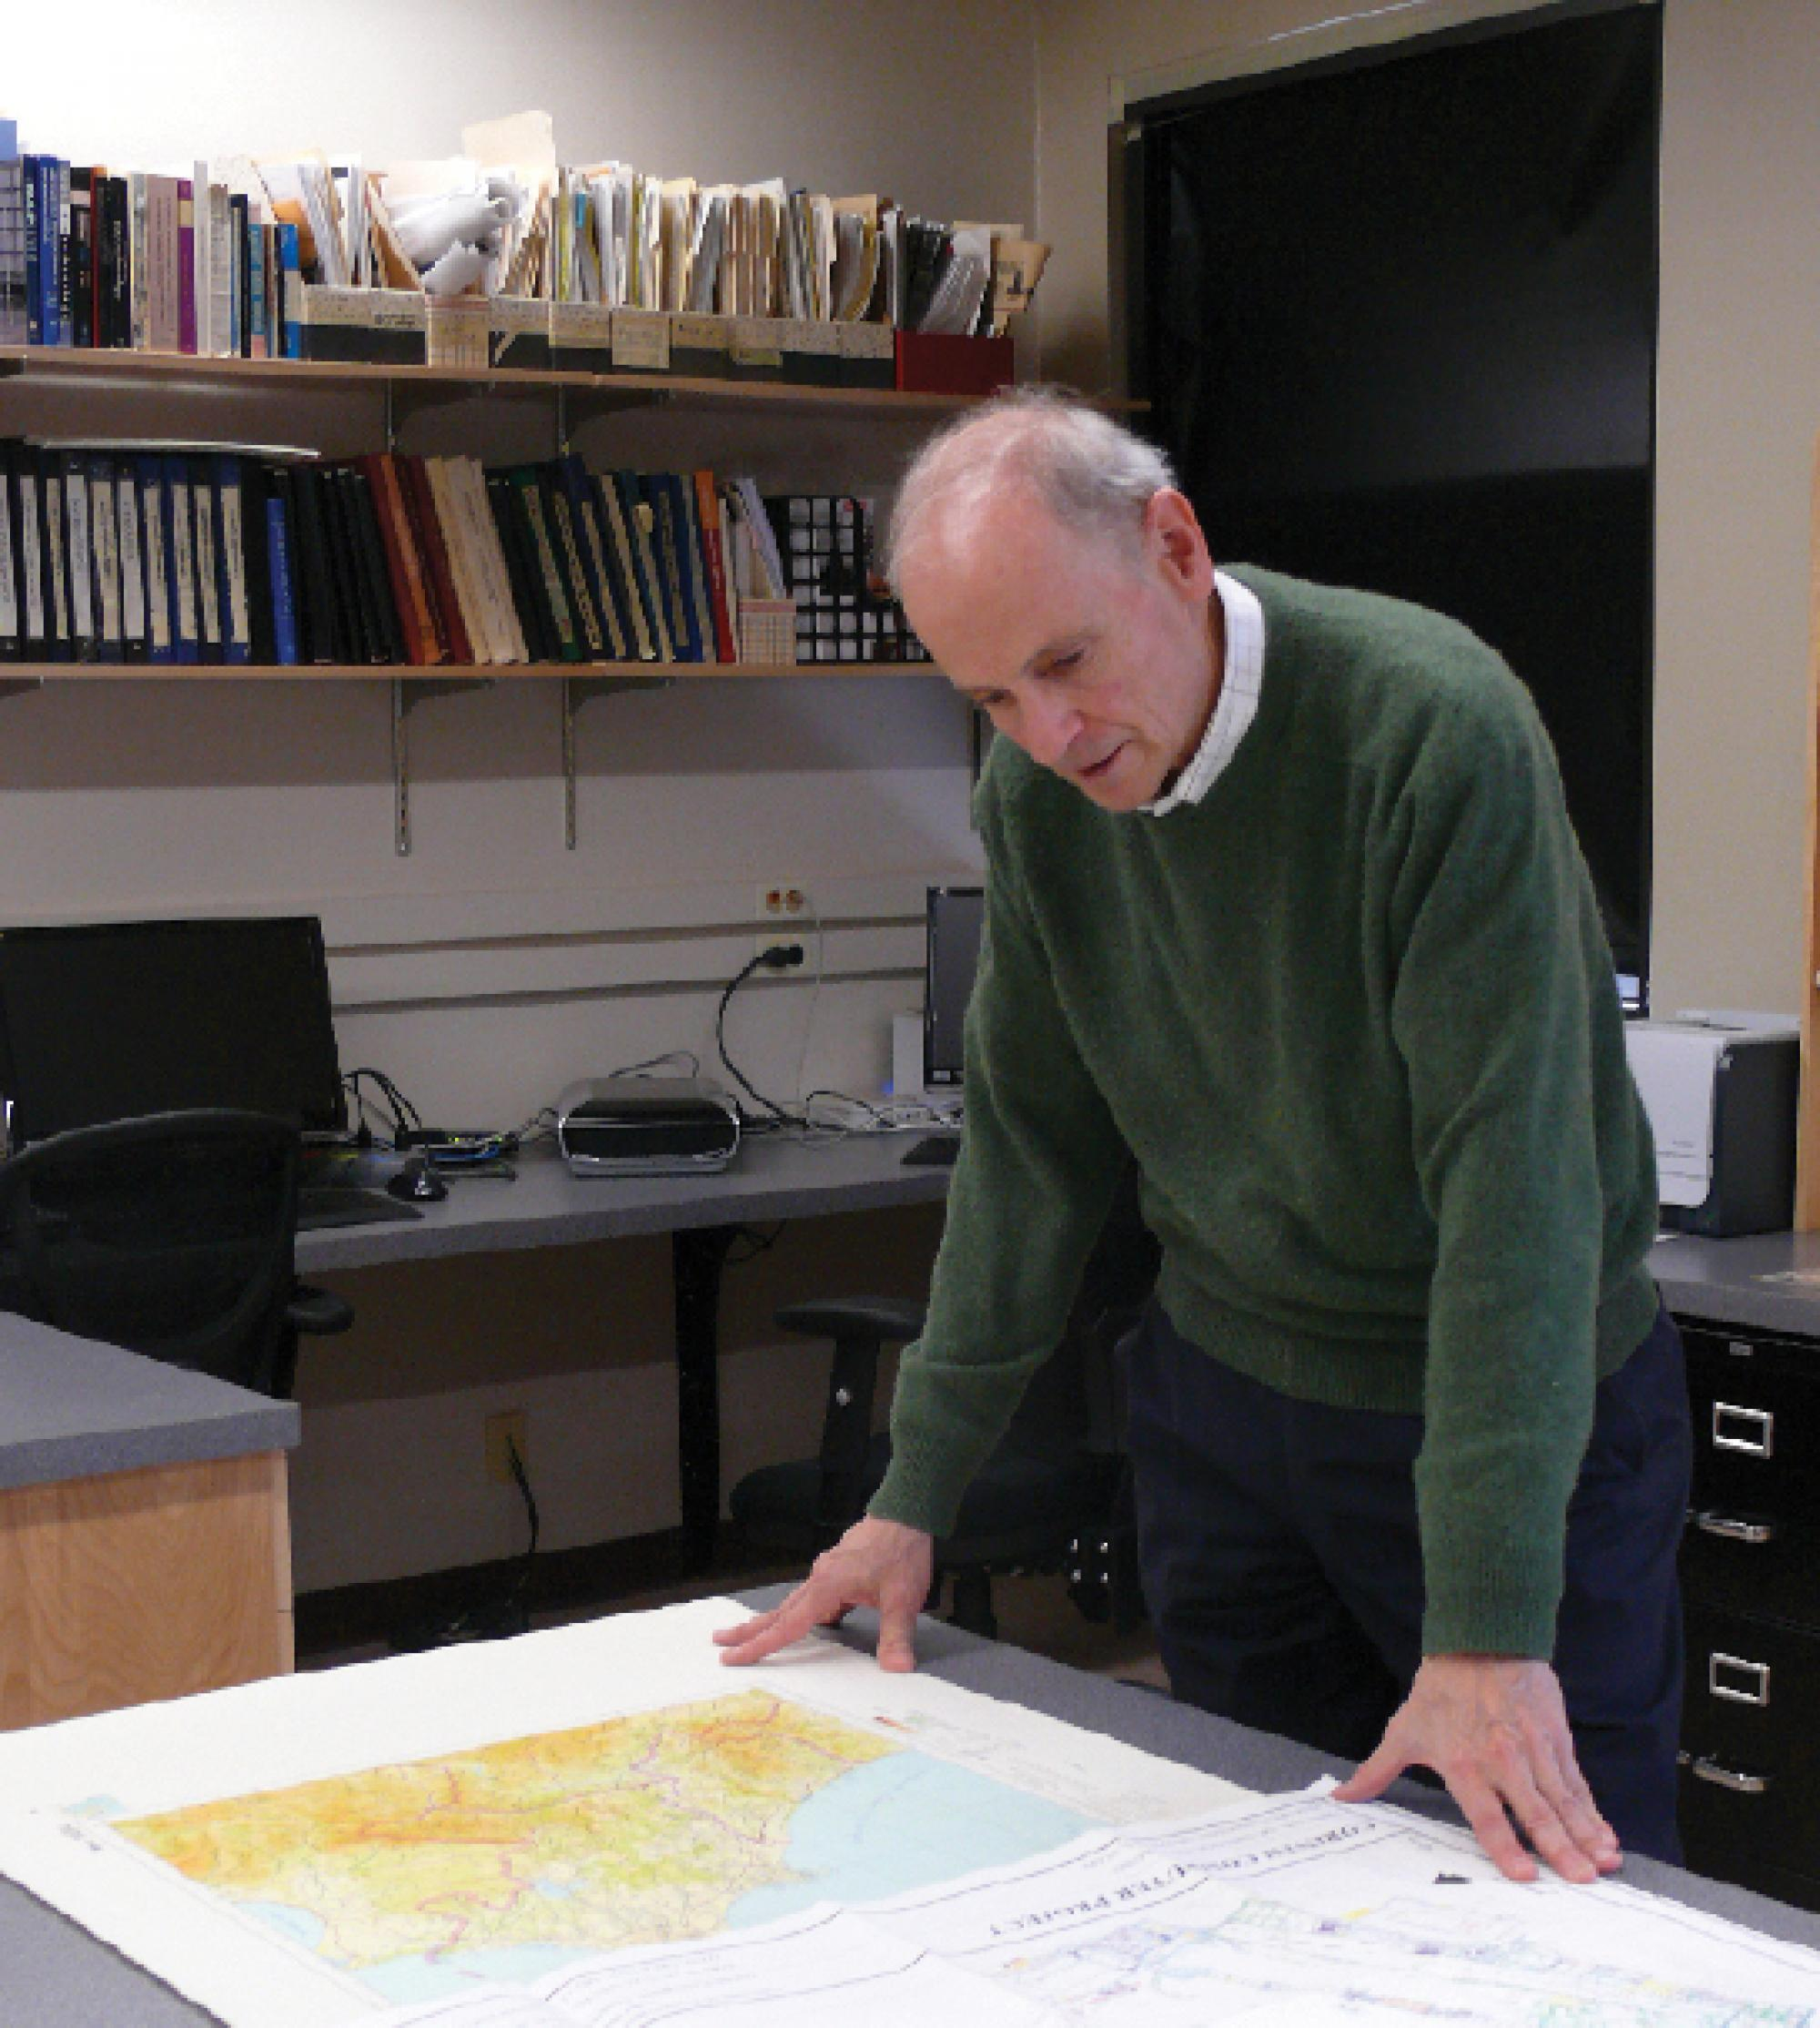 UA archaeologist David Romano has jumped into his work at the UA, quickly setting up the Archaeology Mapping Lab, which will benefit students from all over campus, including those in anthropology, classics, history, architecture and geography. The lab is